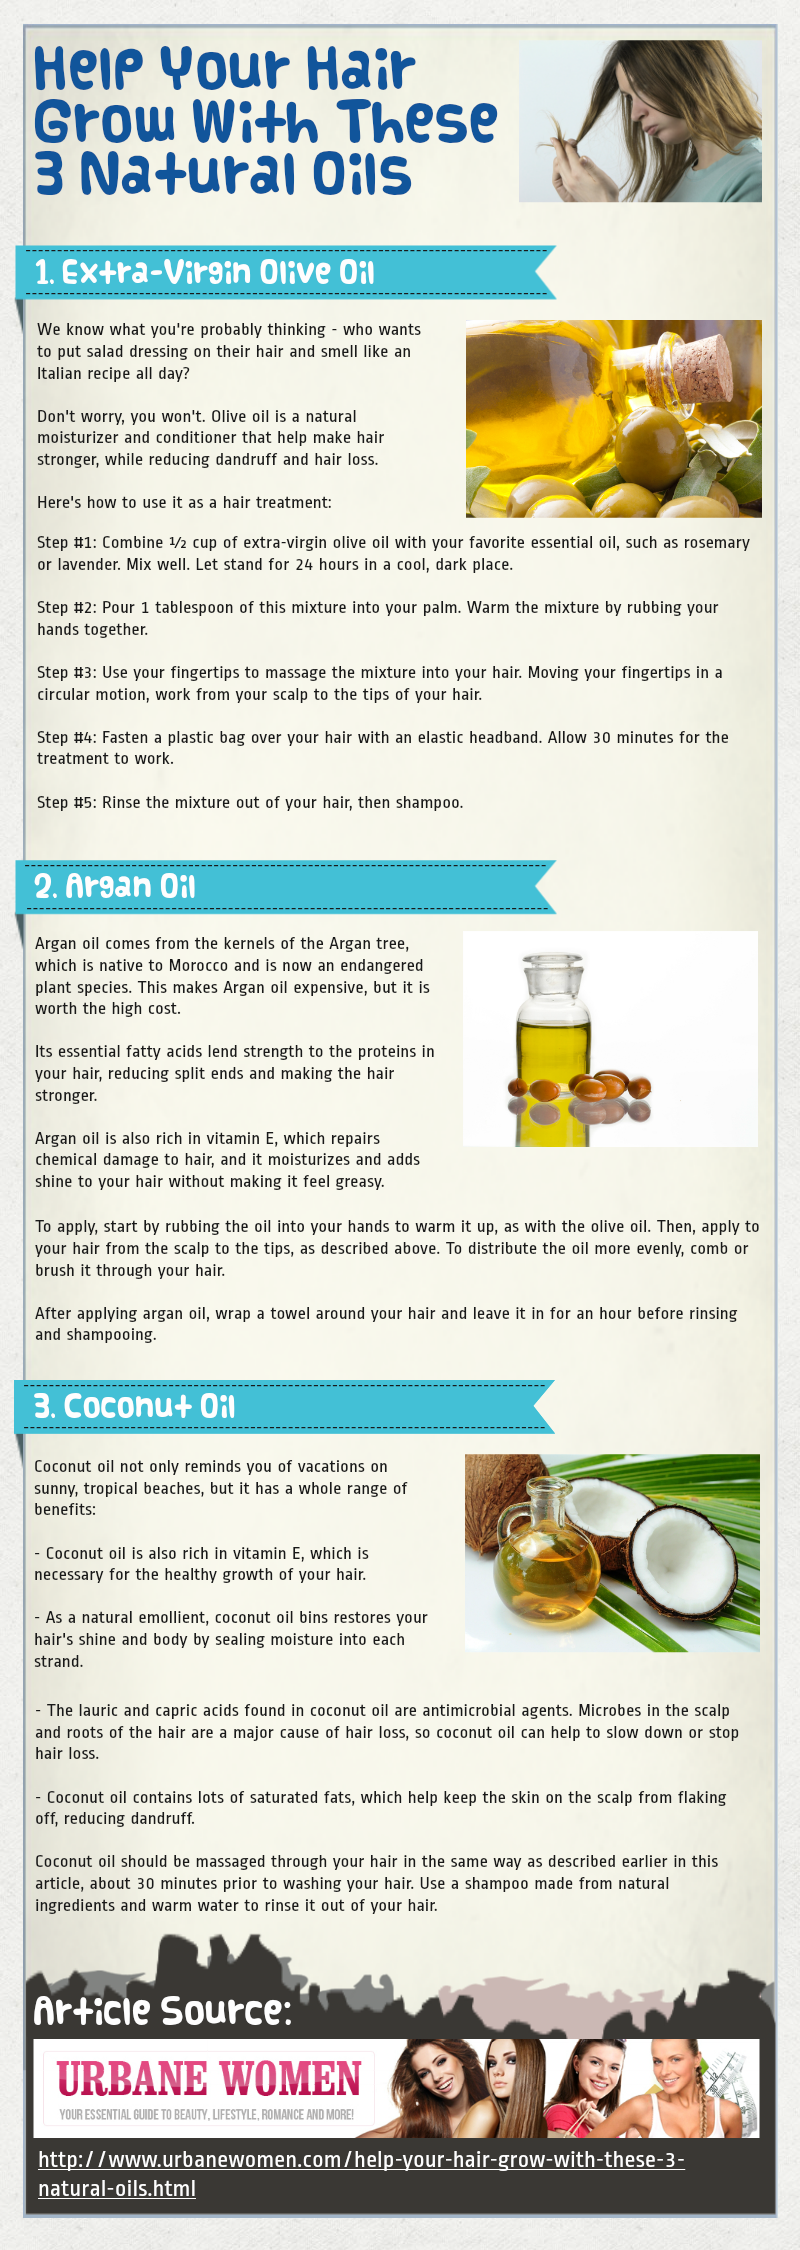 Help Your Hair Grow With These 3 Natural Oils [Infographic]